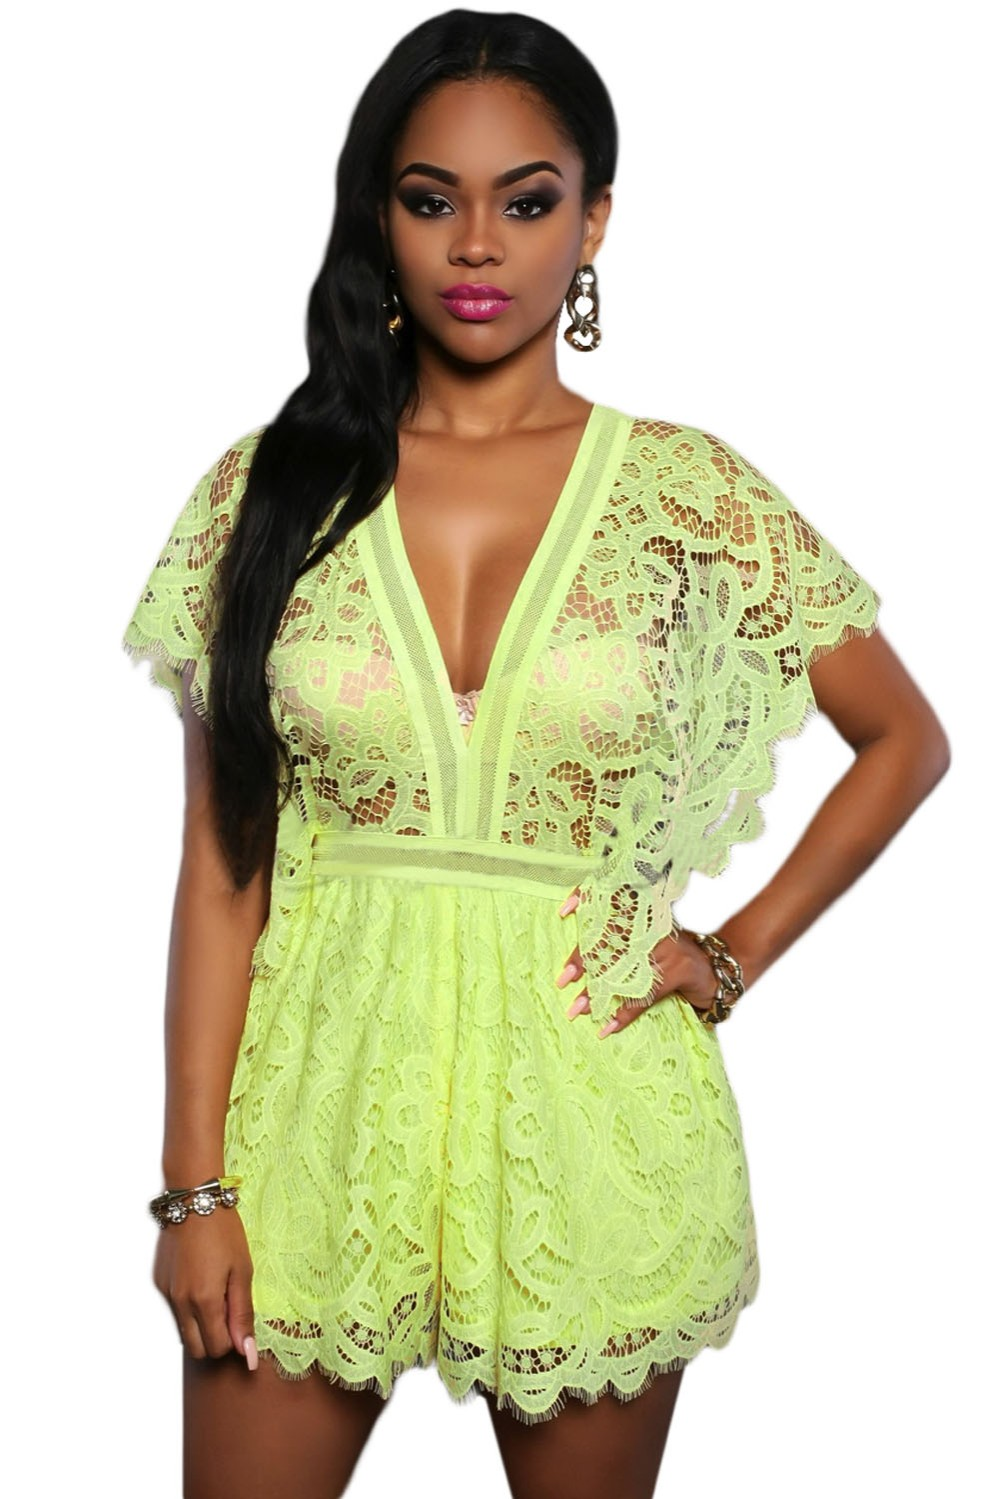 Fluorescent-green-Lace-Sheer-Top-Romper-LC64004-7-1